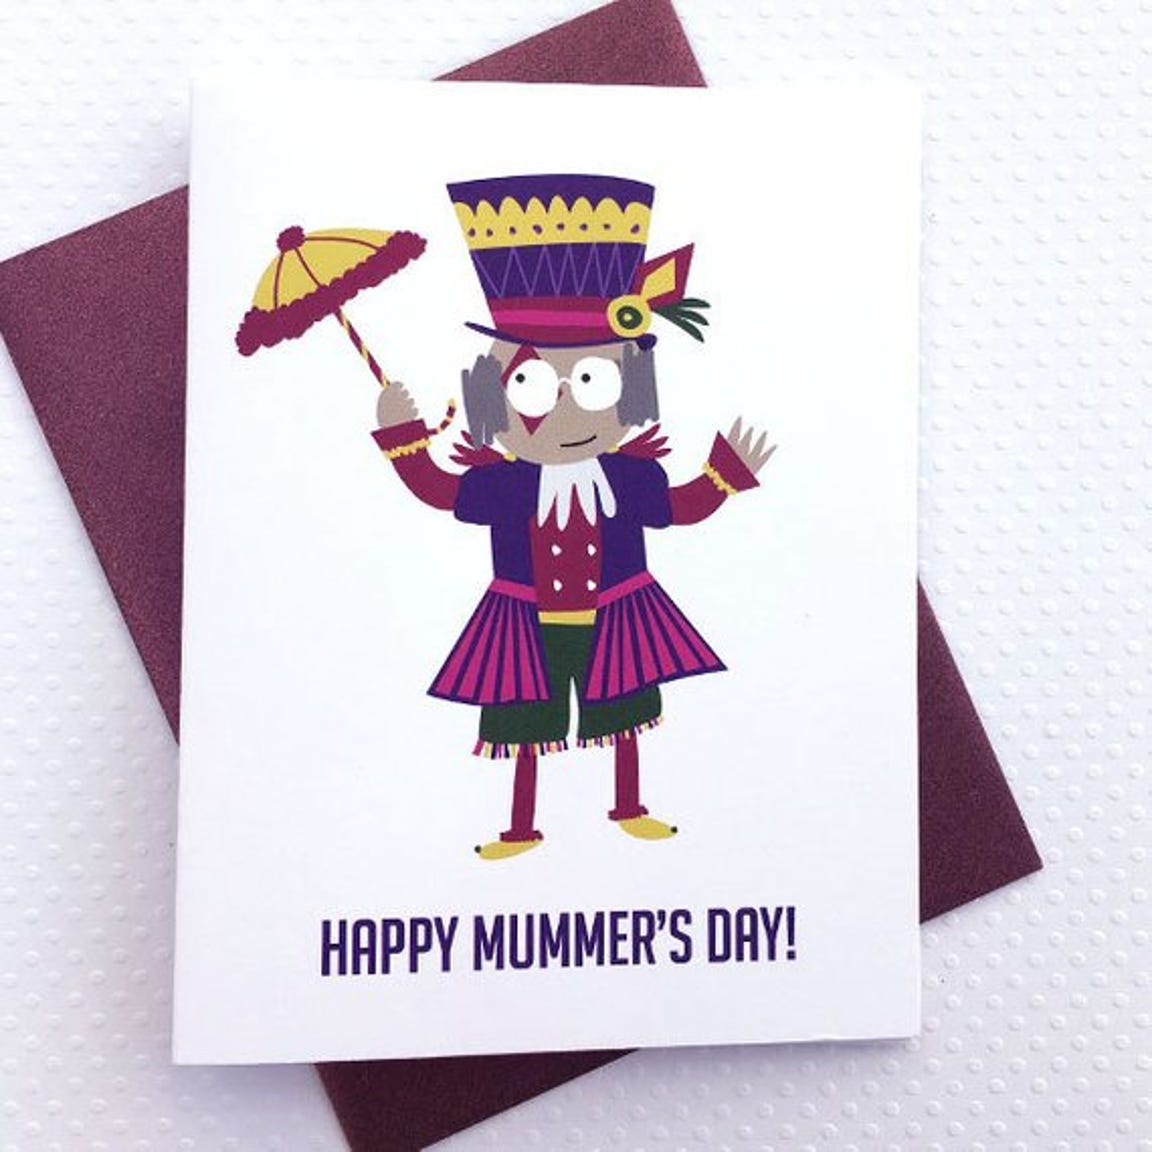 This Happy Mummer's Day card is made by the Etsy shop Frankadelphia.